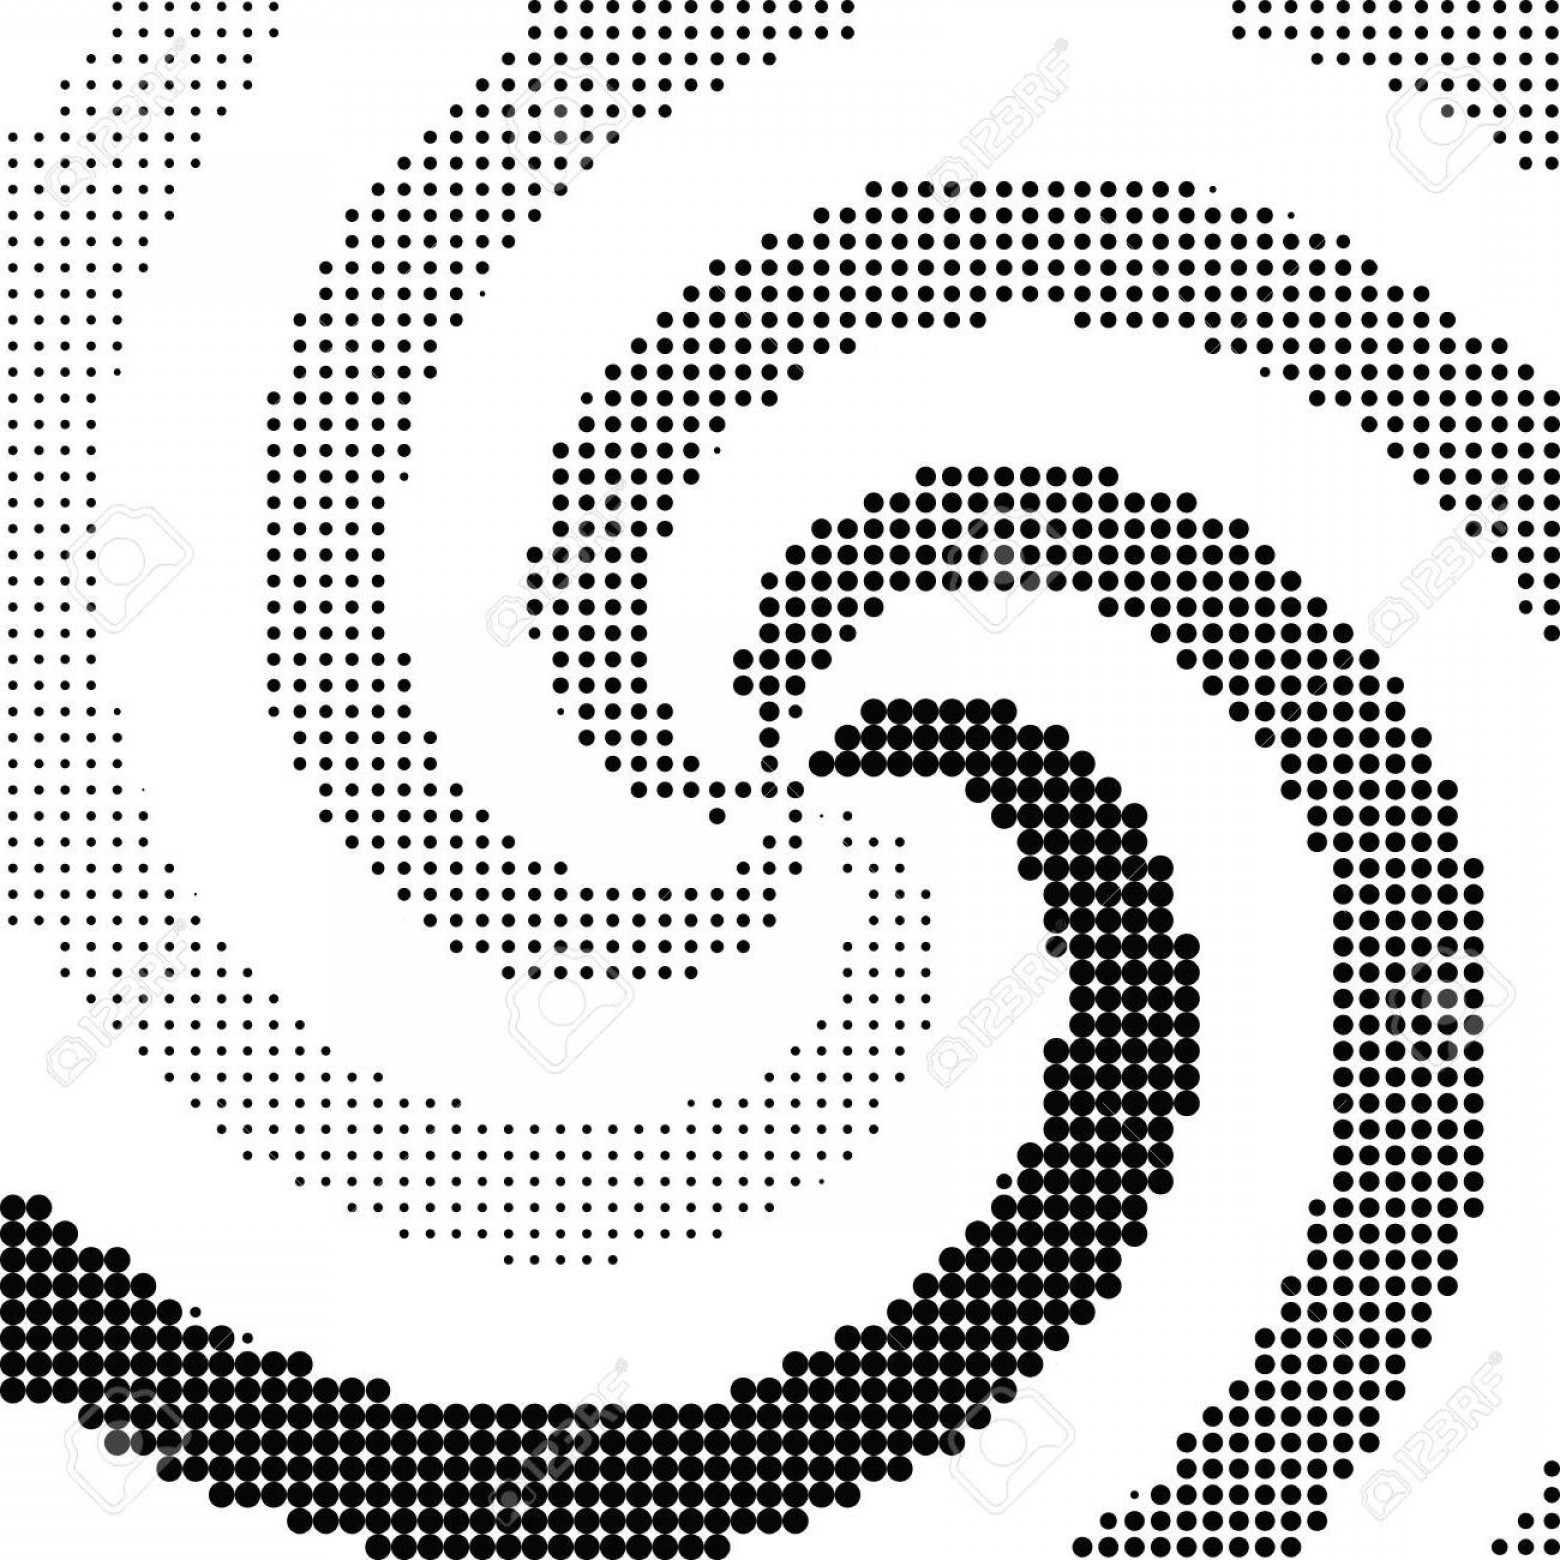 New Purdue Train Logo Vector: Best Free Abstract Swirl Halftone Dot Vector Pictures